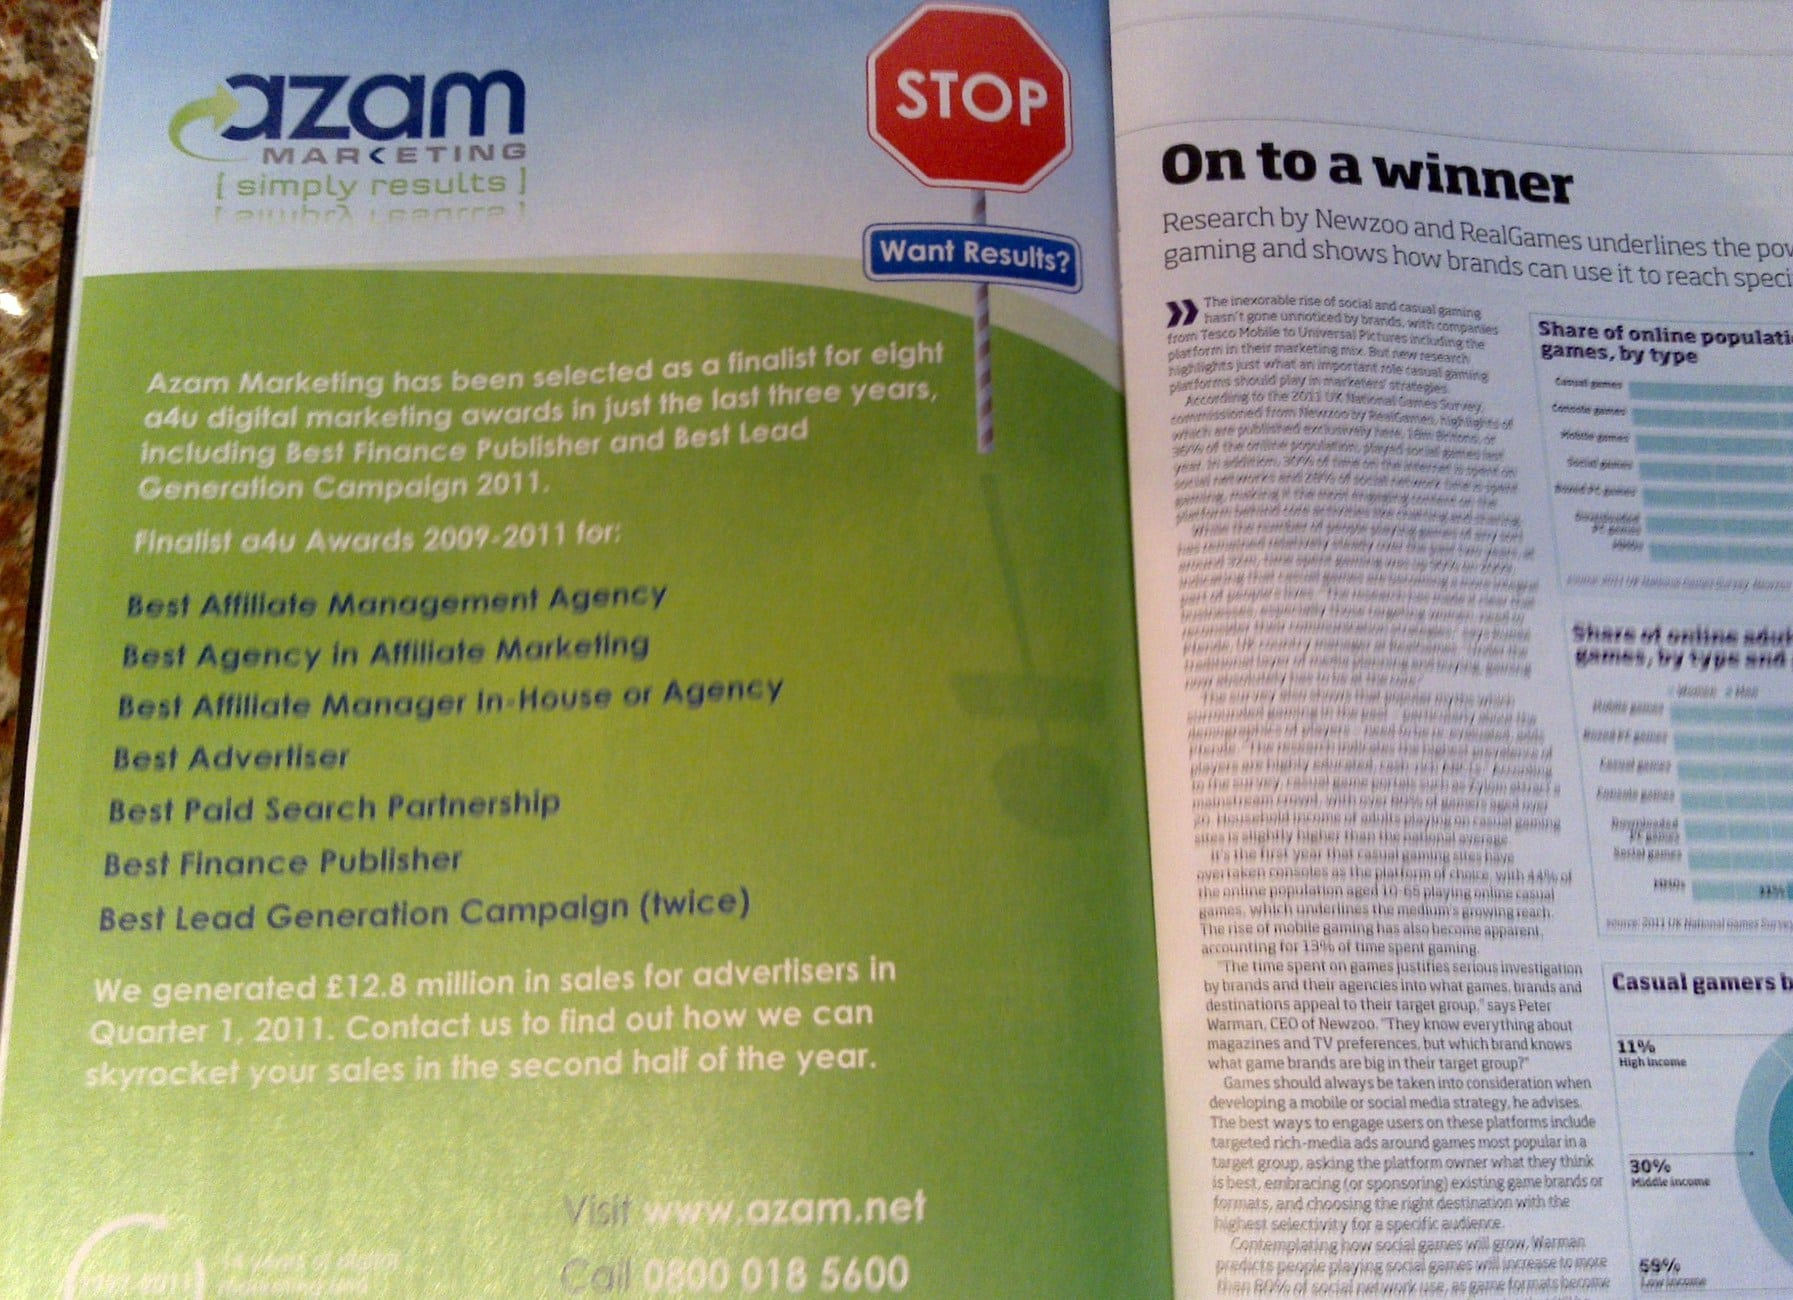 Our advert in this week's NMA (New Media Age) magazine. Click here to see bigger size version